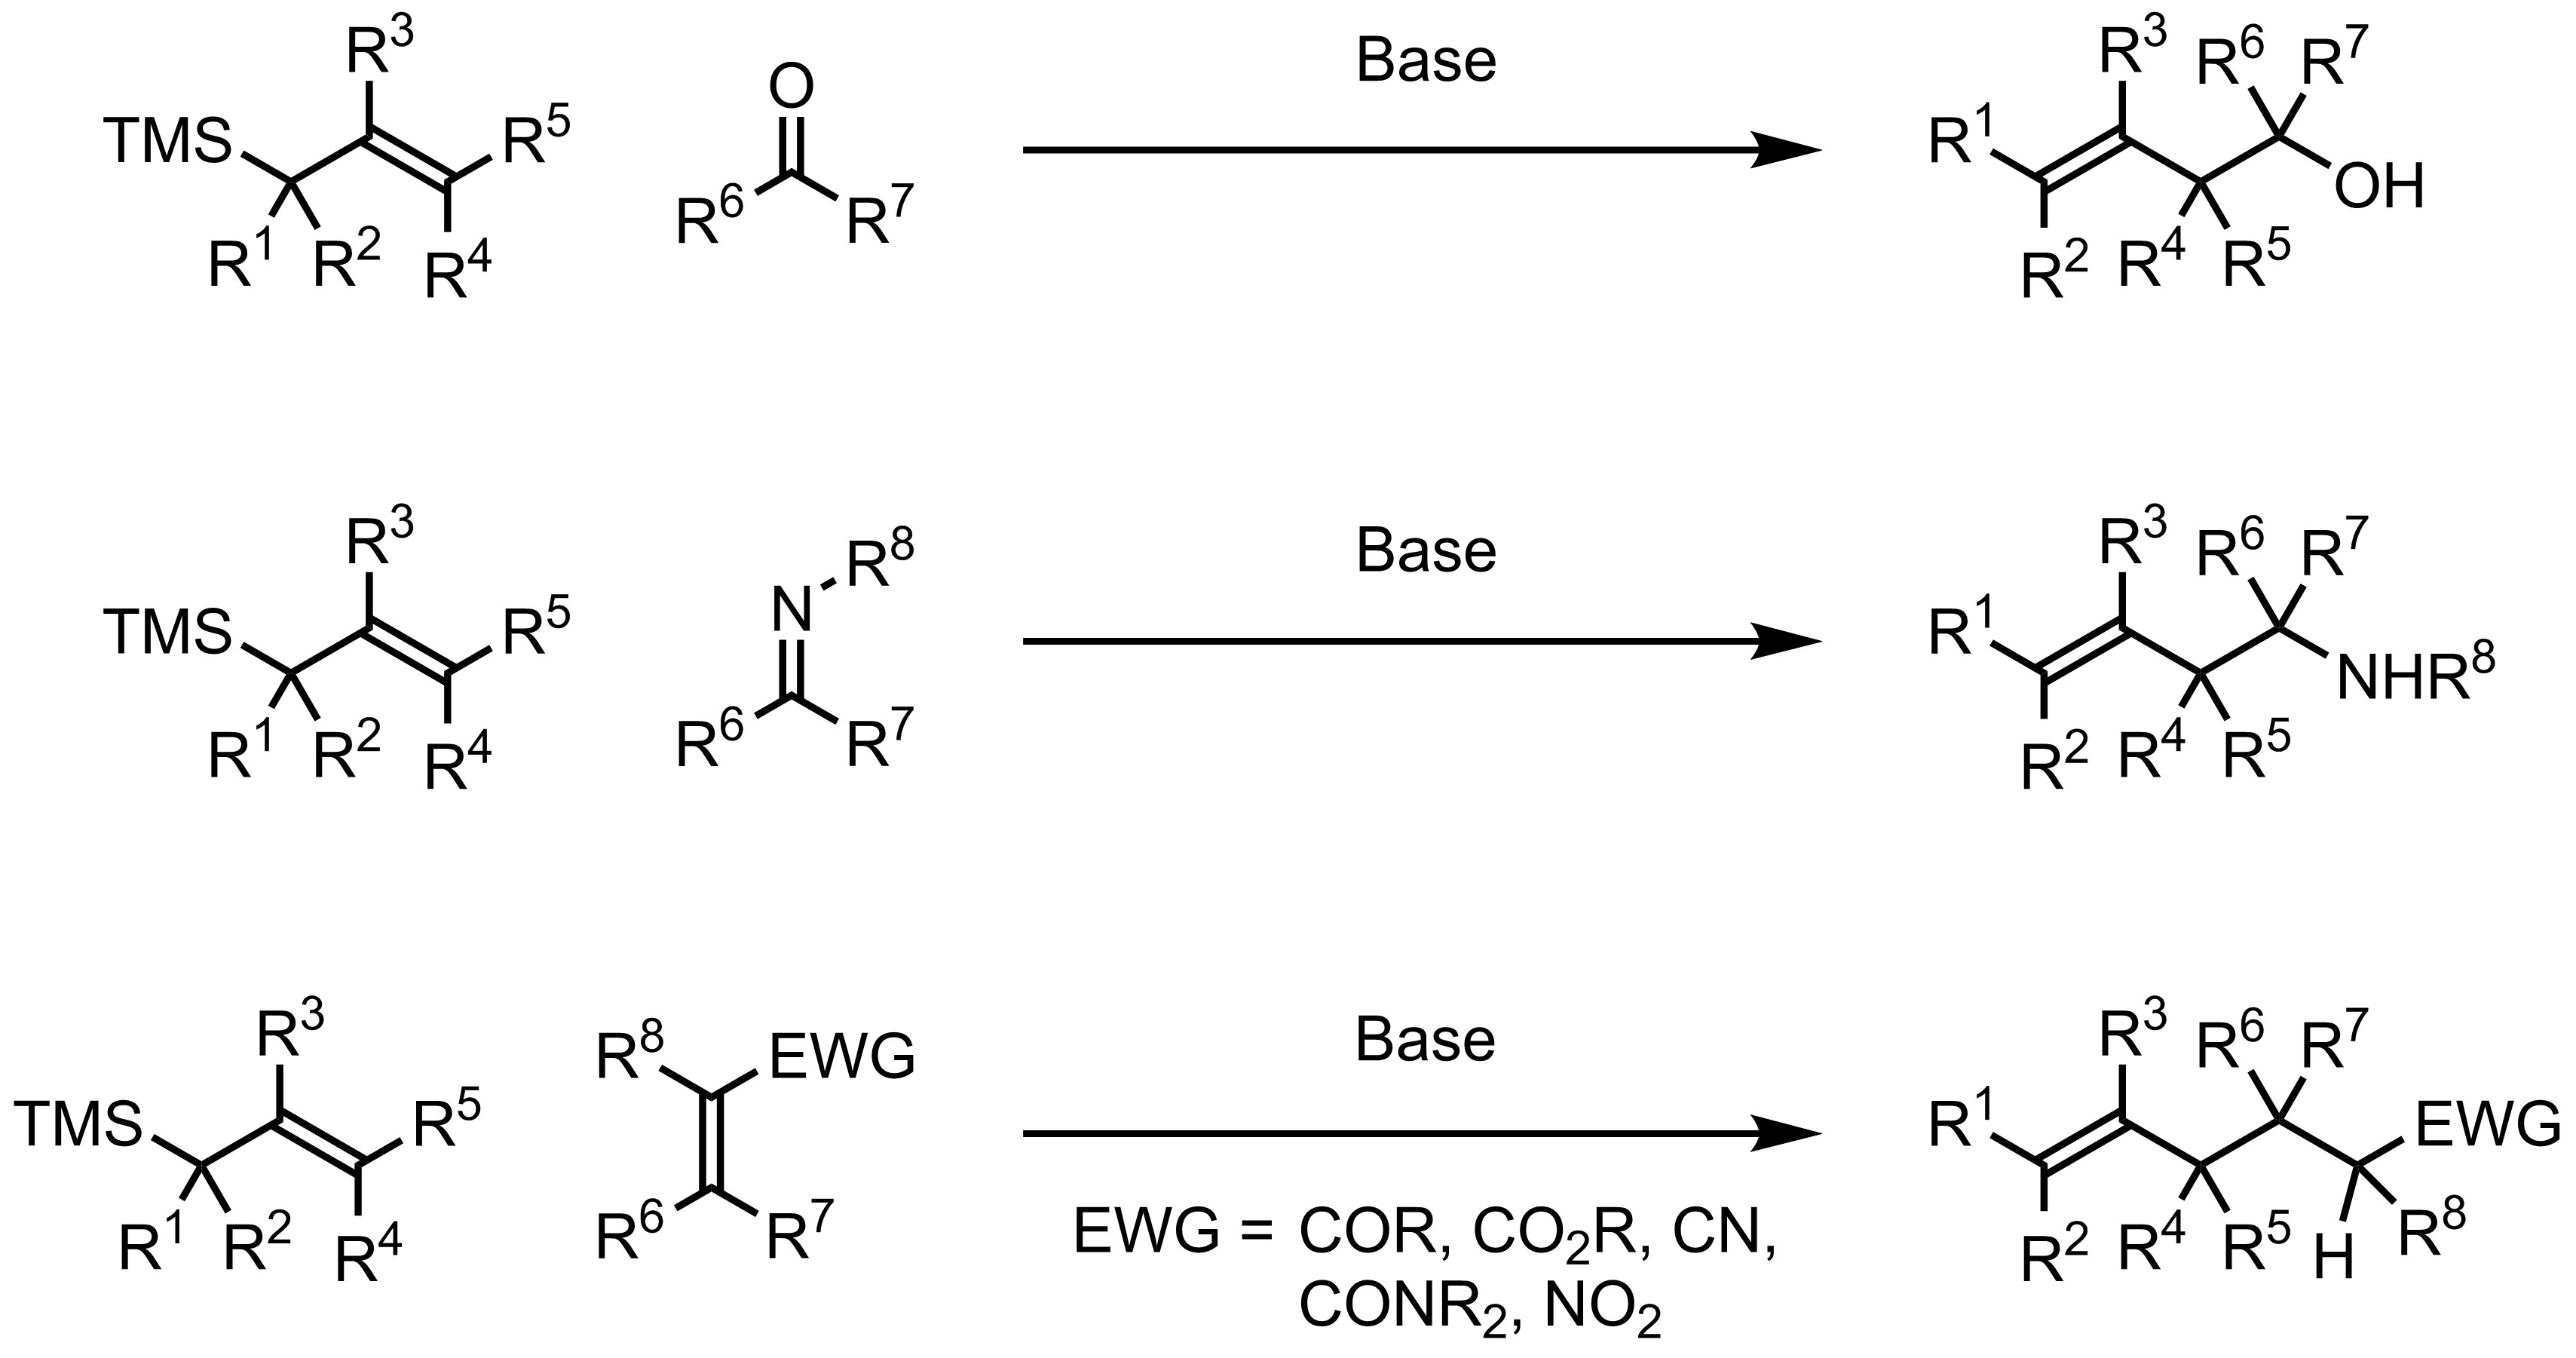 Schematic representation of the Hosomi-Sakurai Reaction.